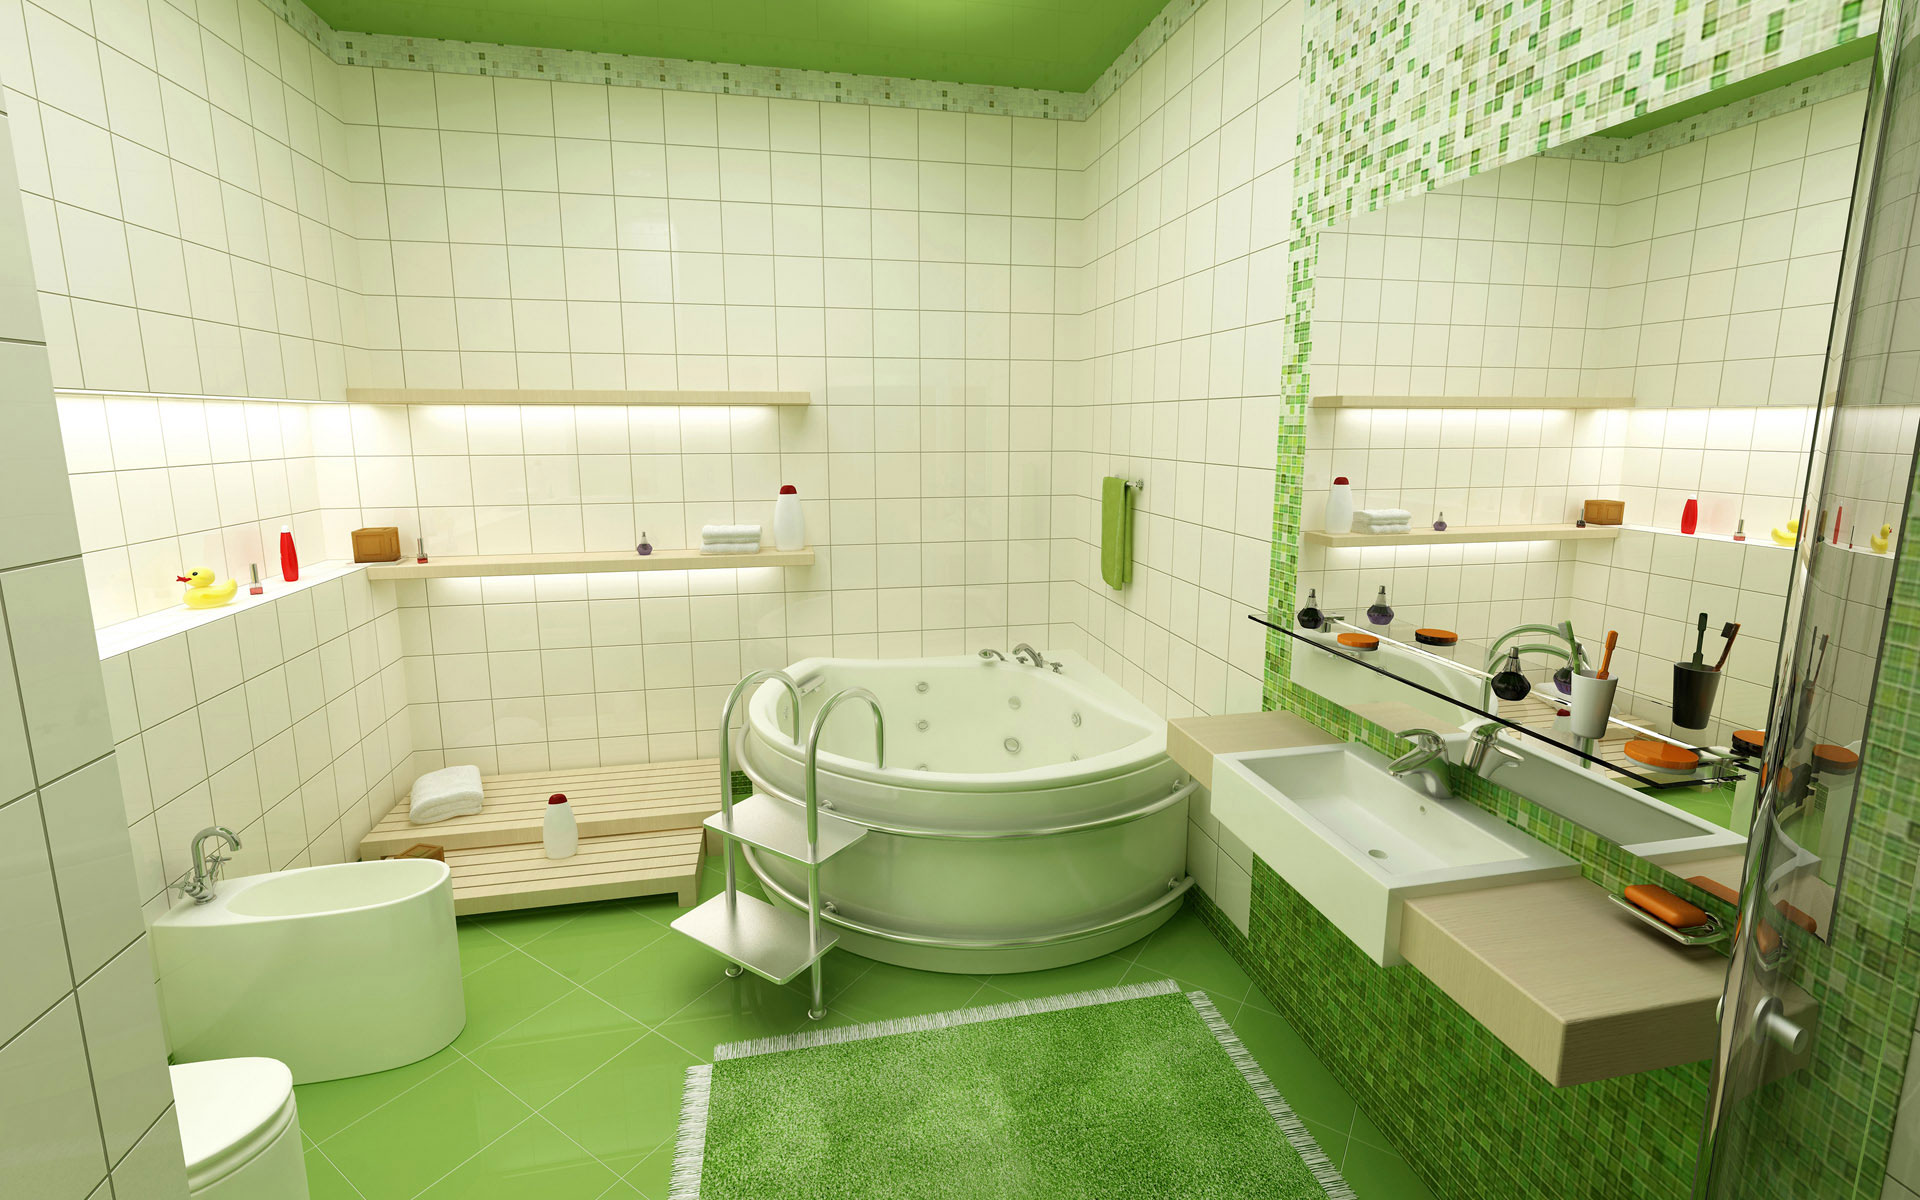 40 sea green bathroom tiles ideas and pictures for Images of bathroom tile ideas